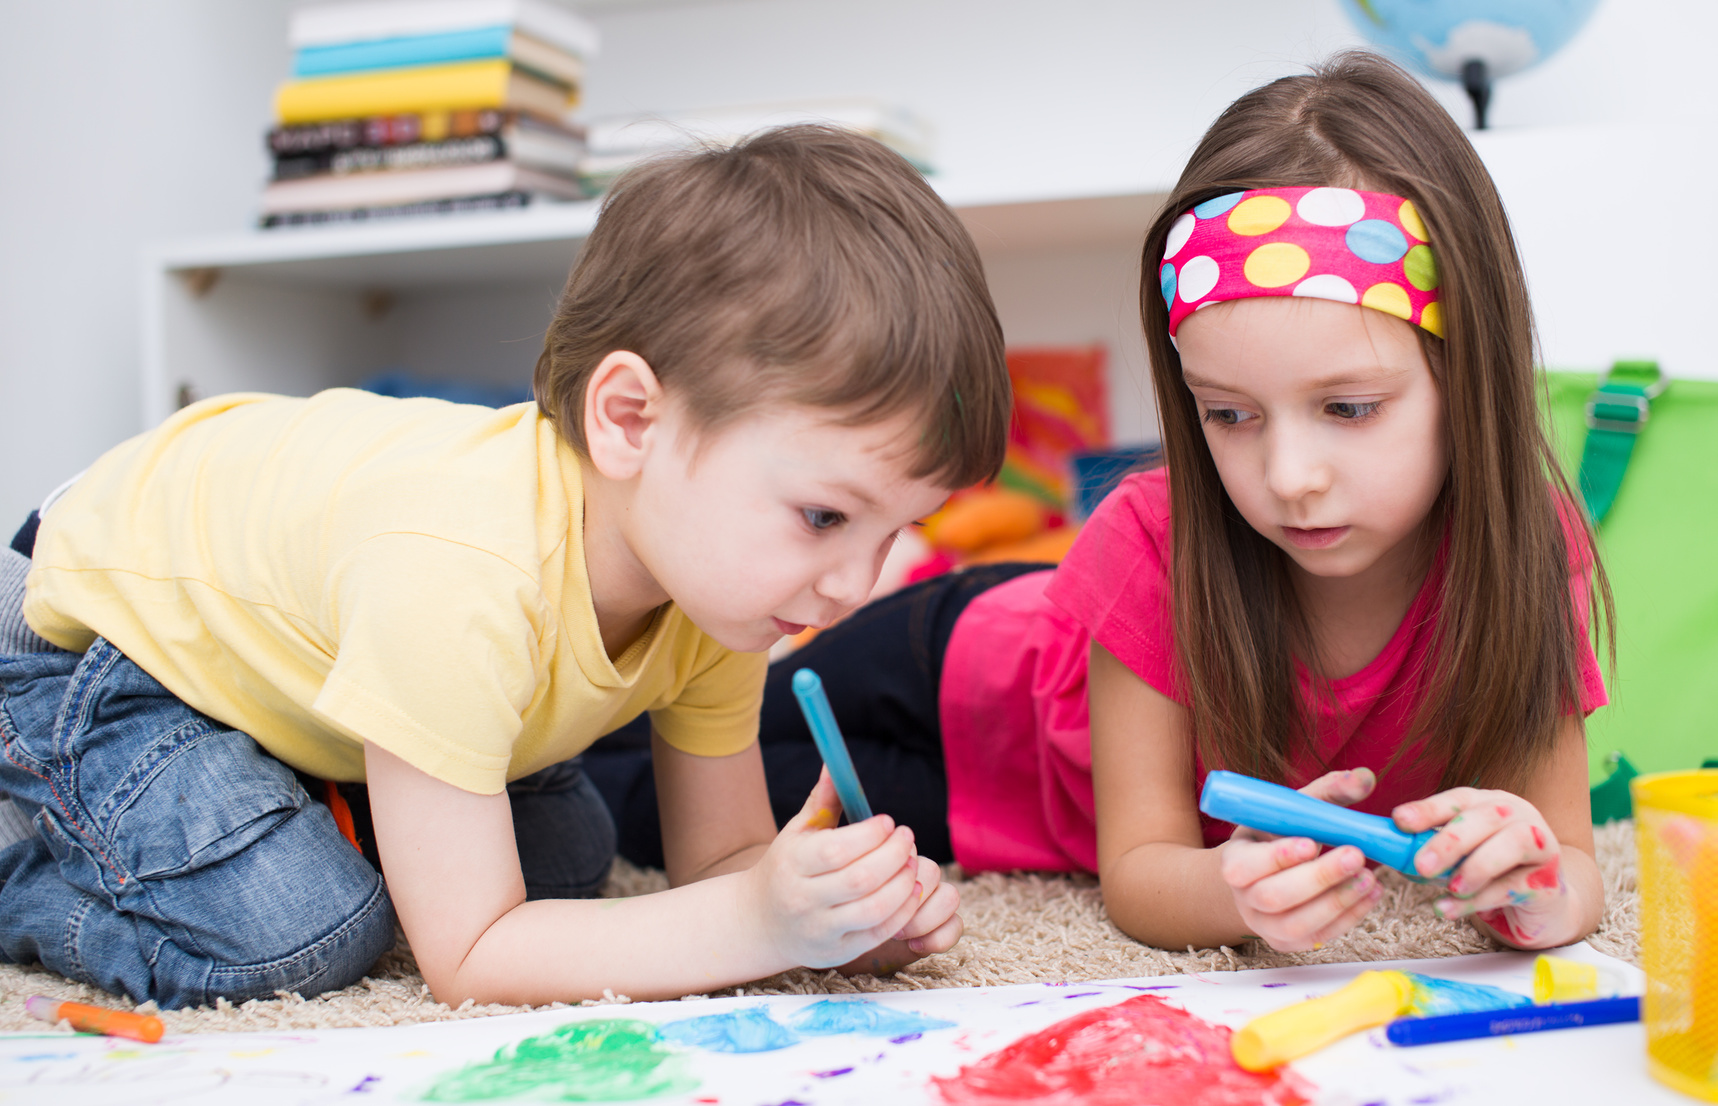 two little kids painting with paintbrush and colorful paints